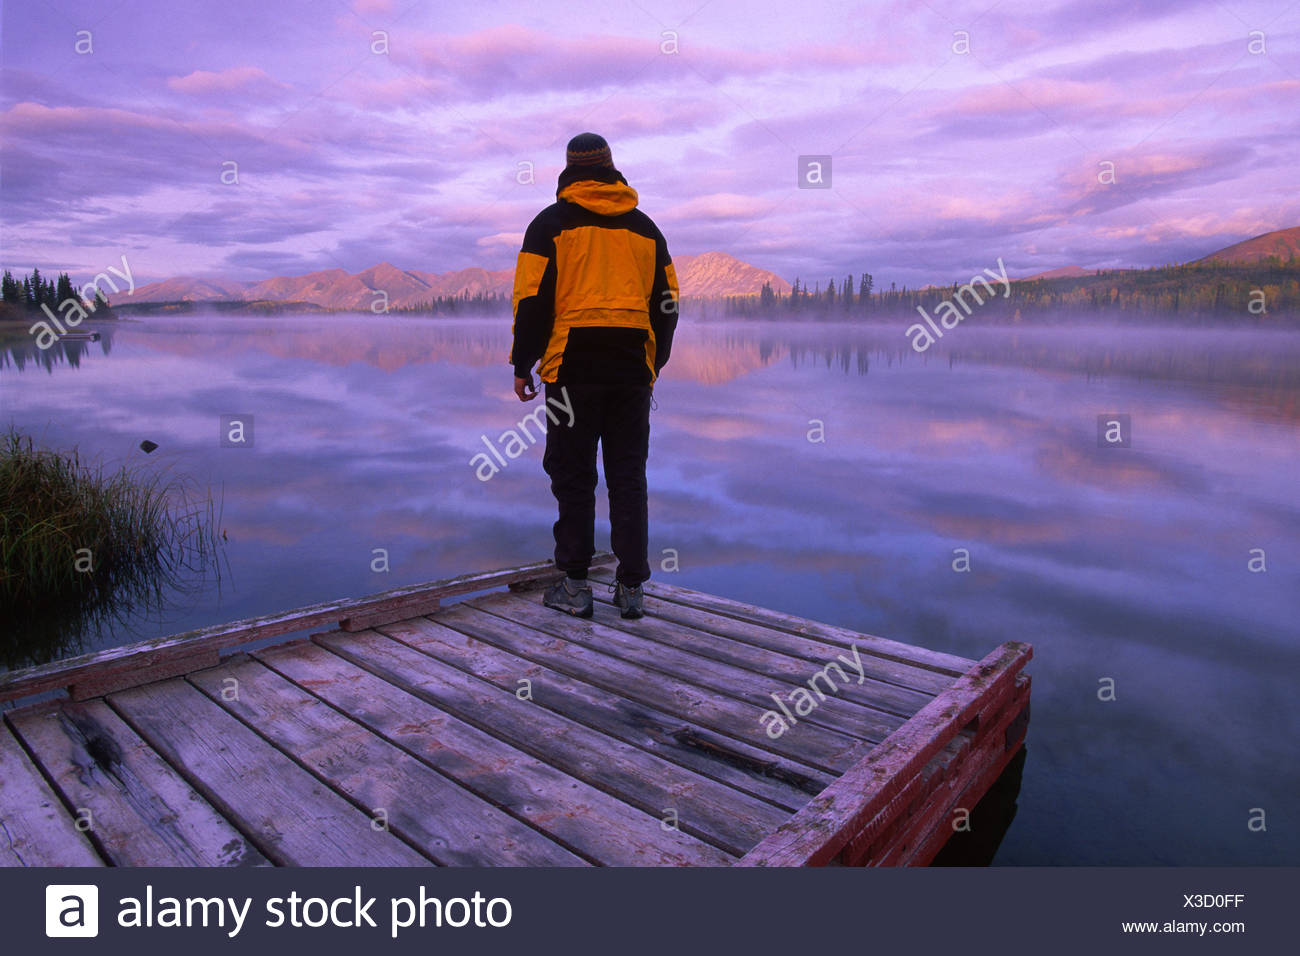 Hiker on Dock at Sunrise, Jackfish Lake, near confluence of North Canol and Robert Campbell Highways, south of Ross River, YT - Stock Image